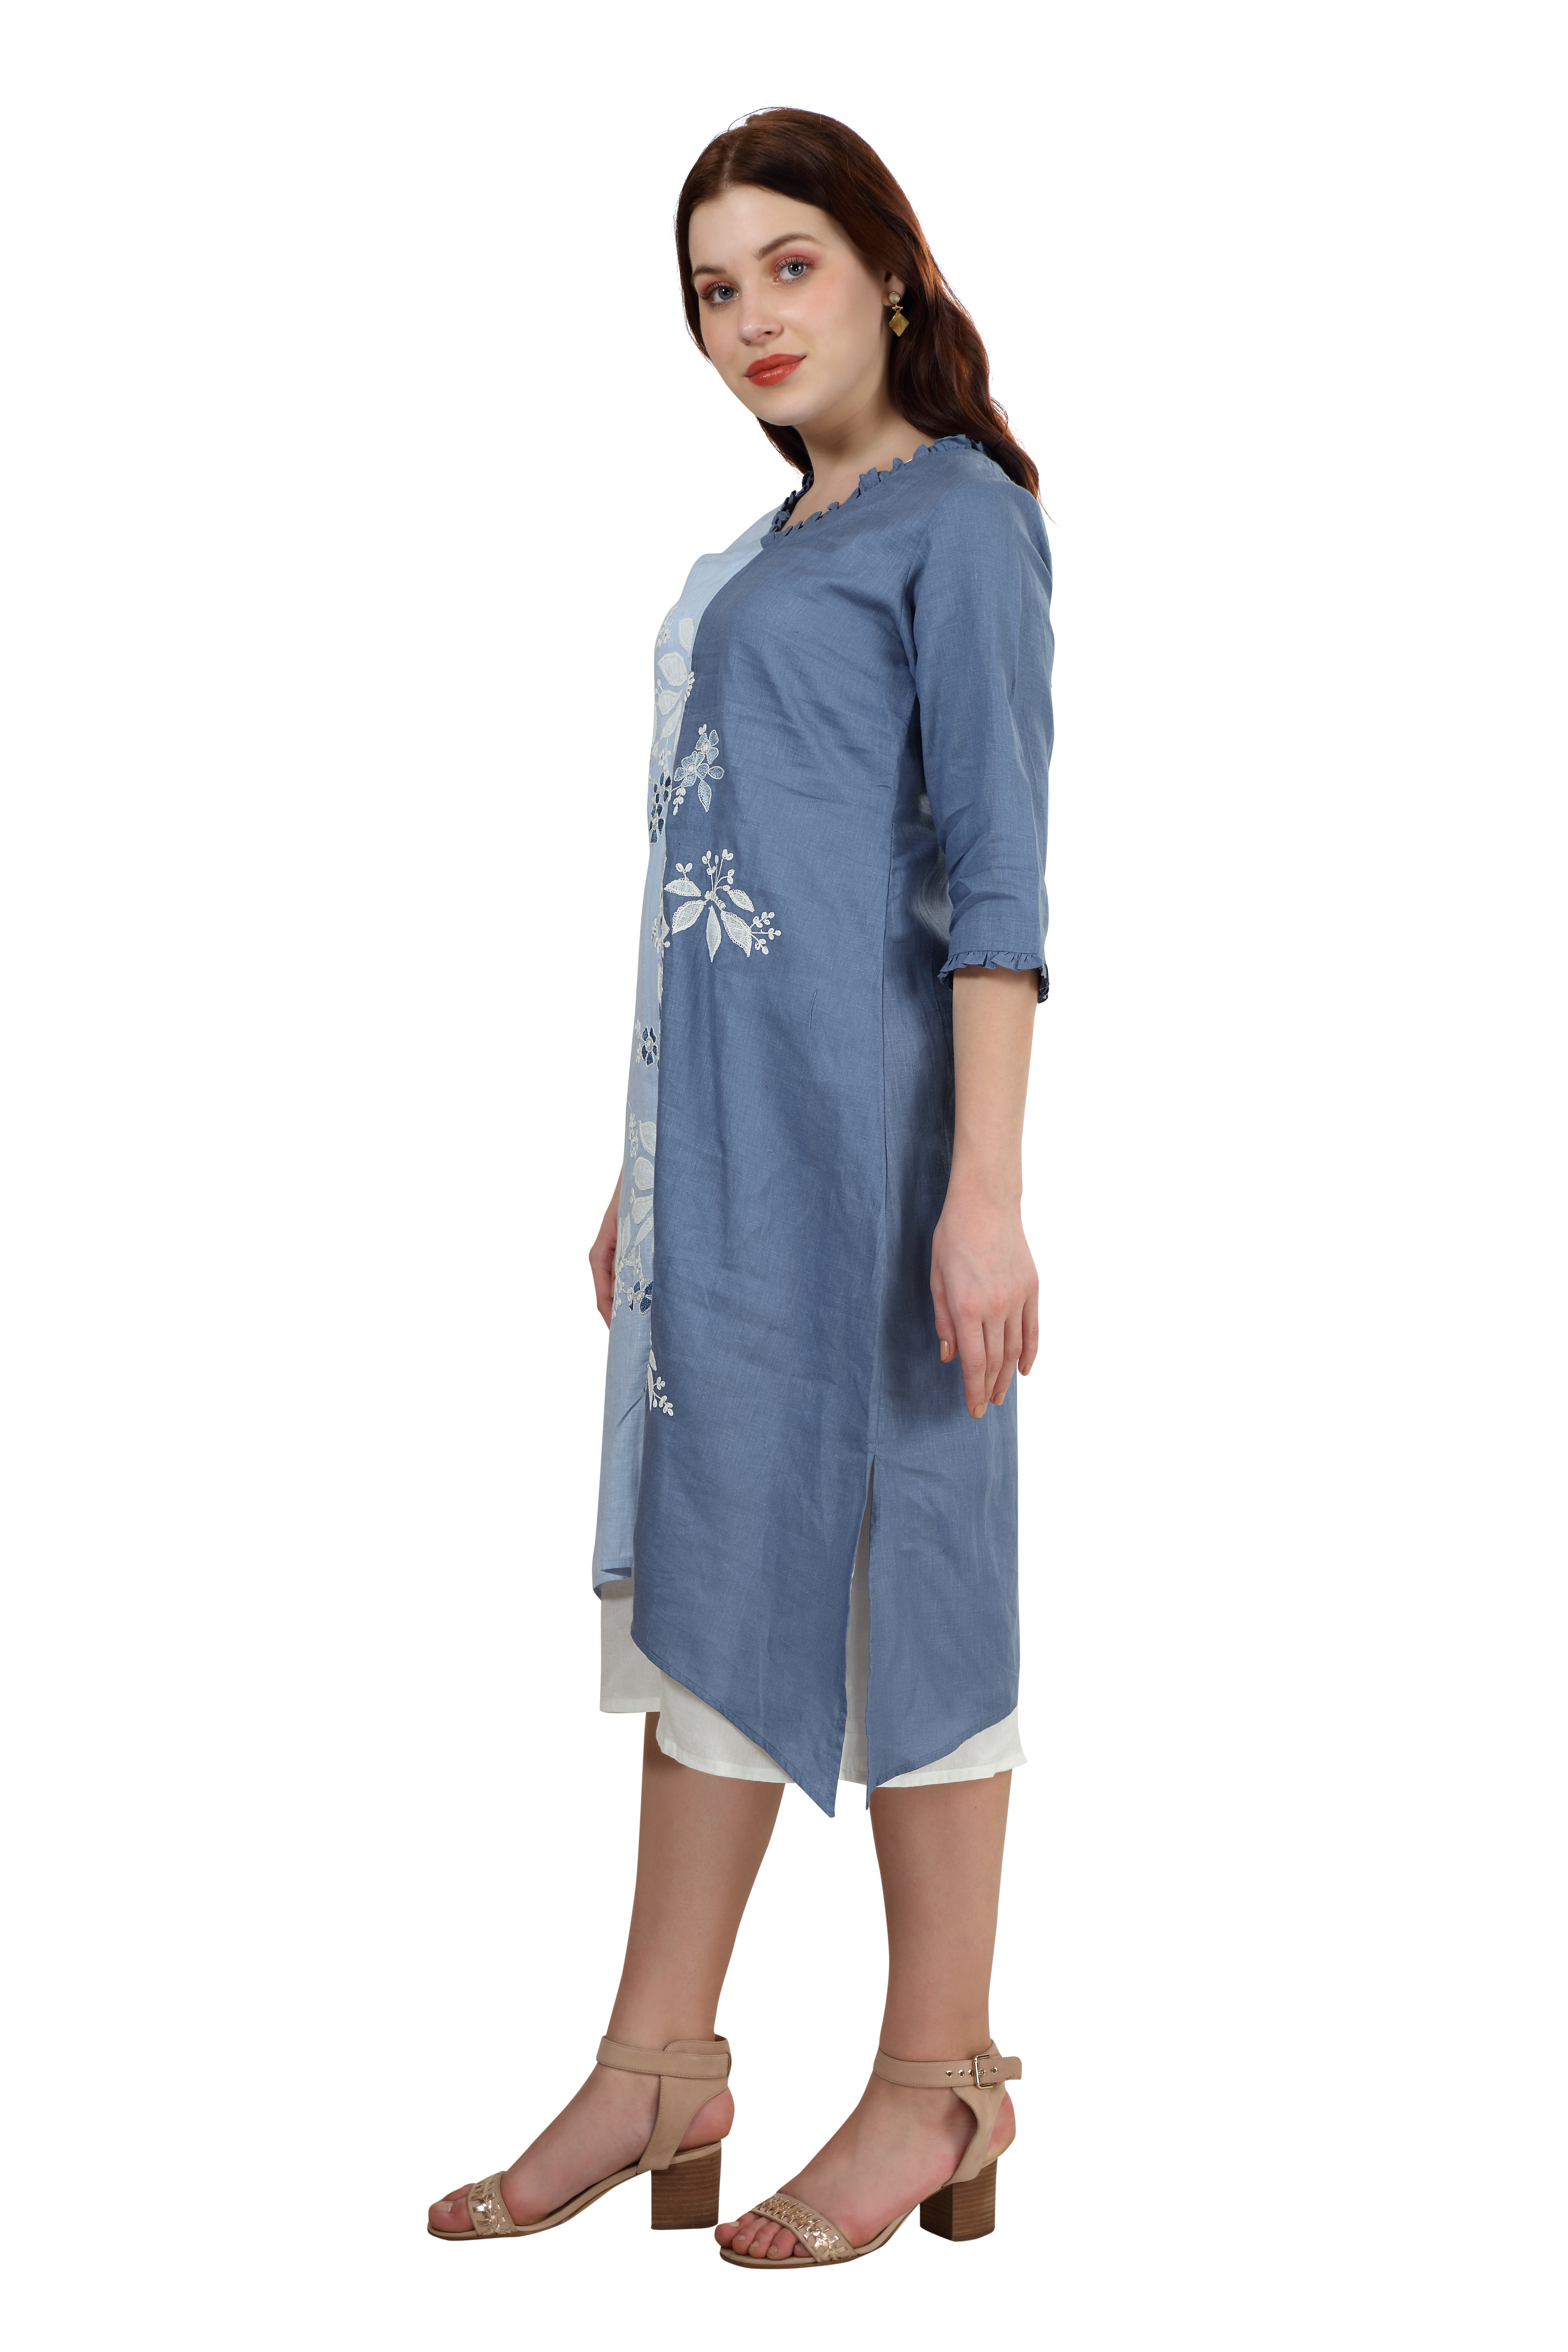 202031 Shades Of Blue Embroidered Linen Dress (M,Blue)